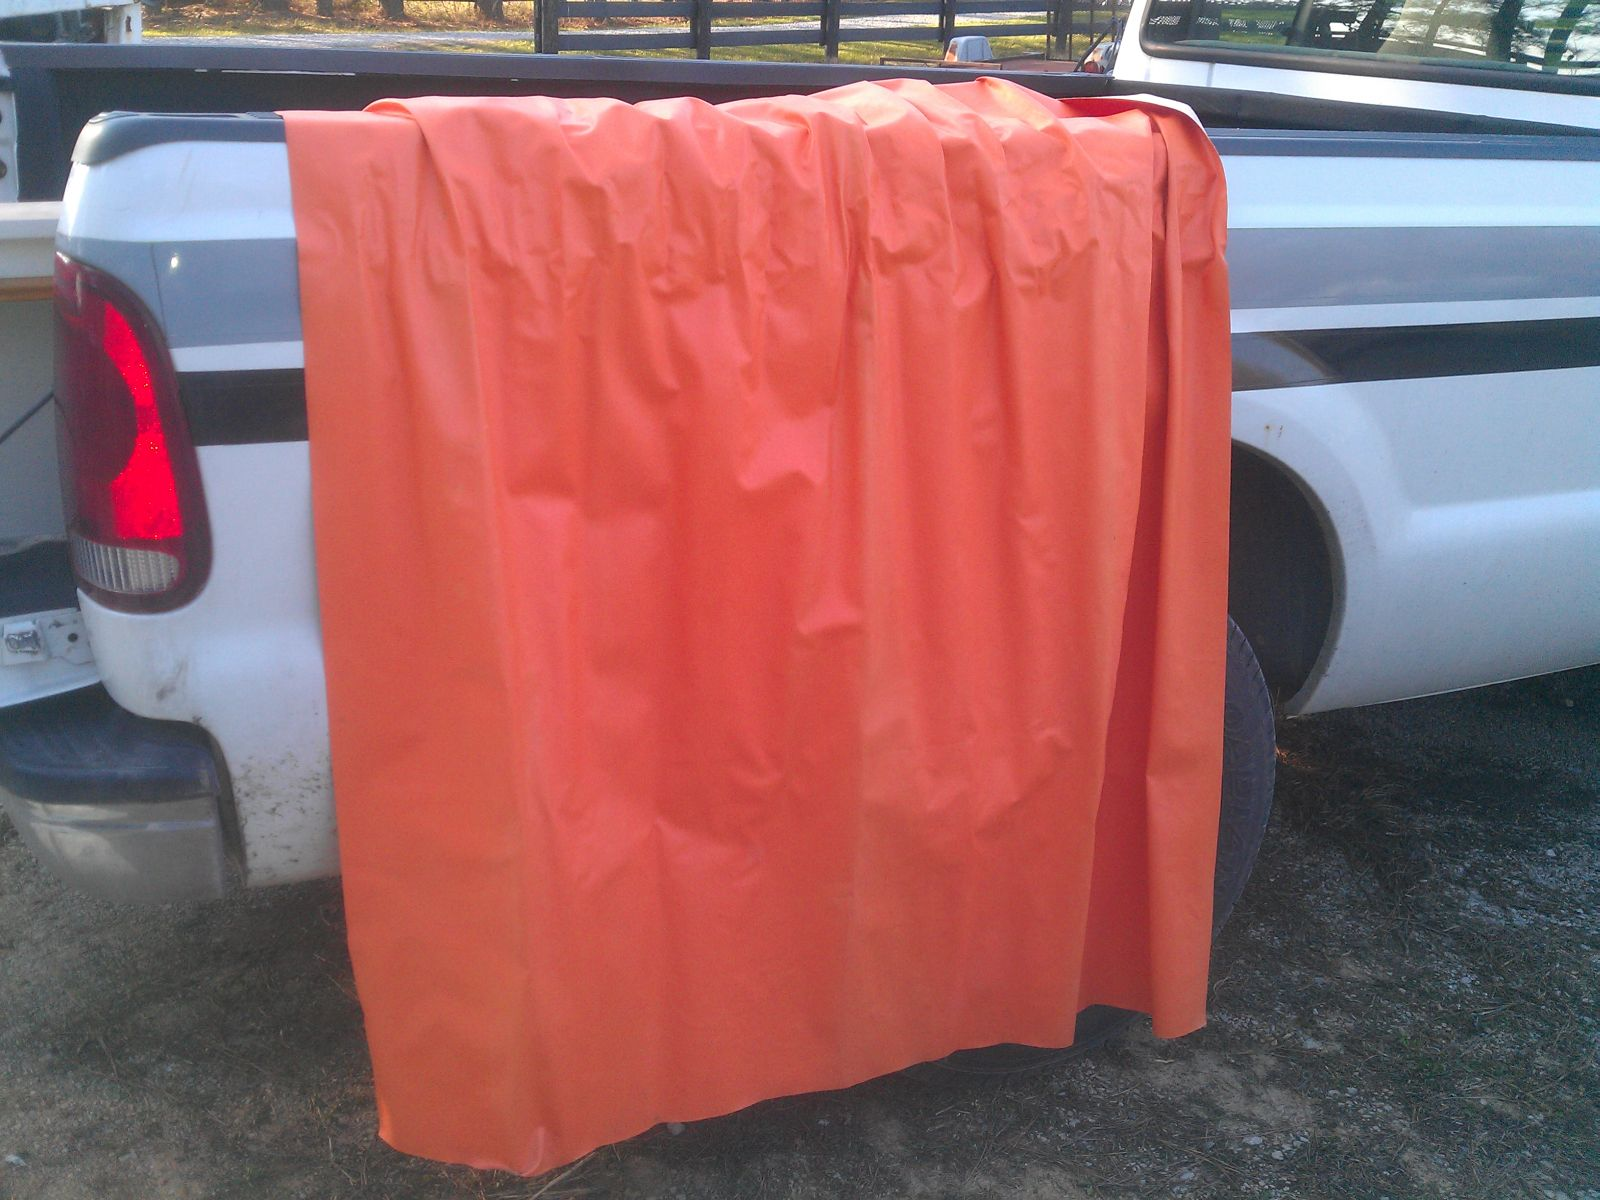 Click image for larger version  Name:74-argosy-orange-shower-curtain.jpg Views:107 Size:257.1 KB ID:182544